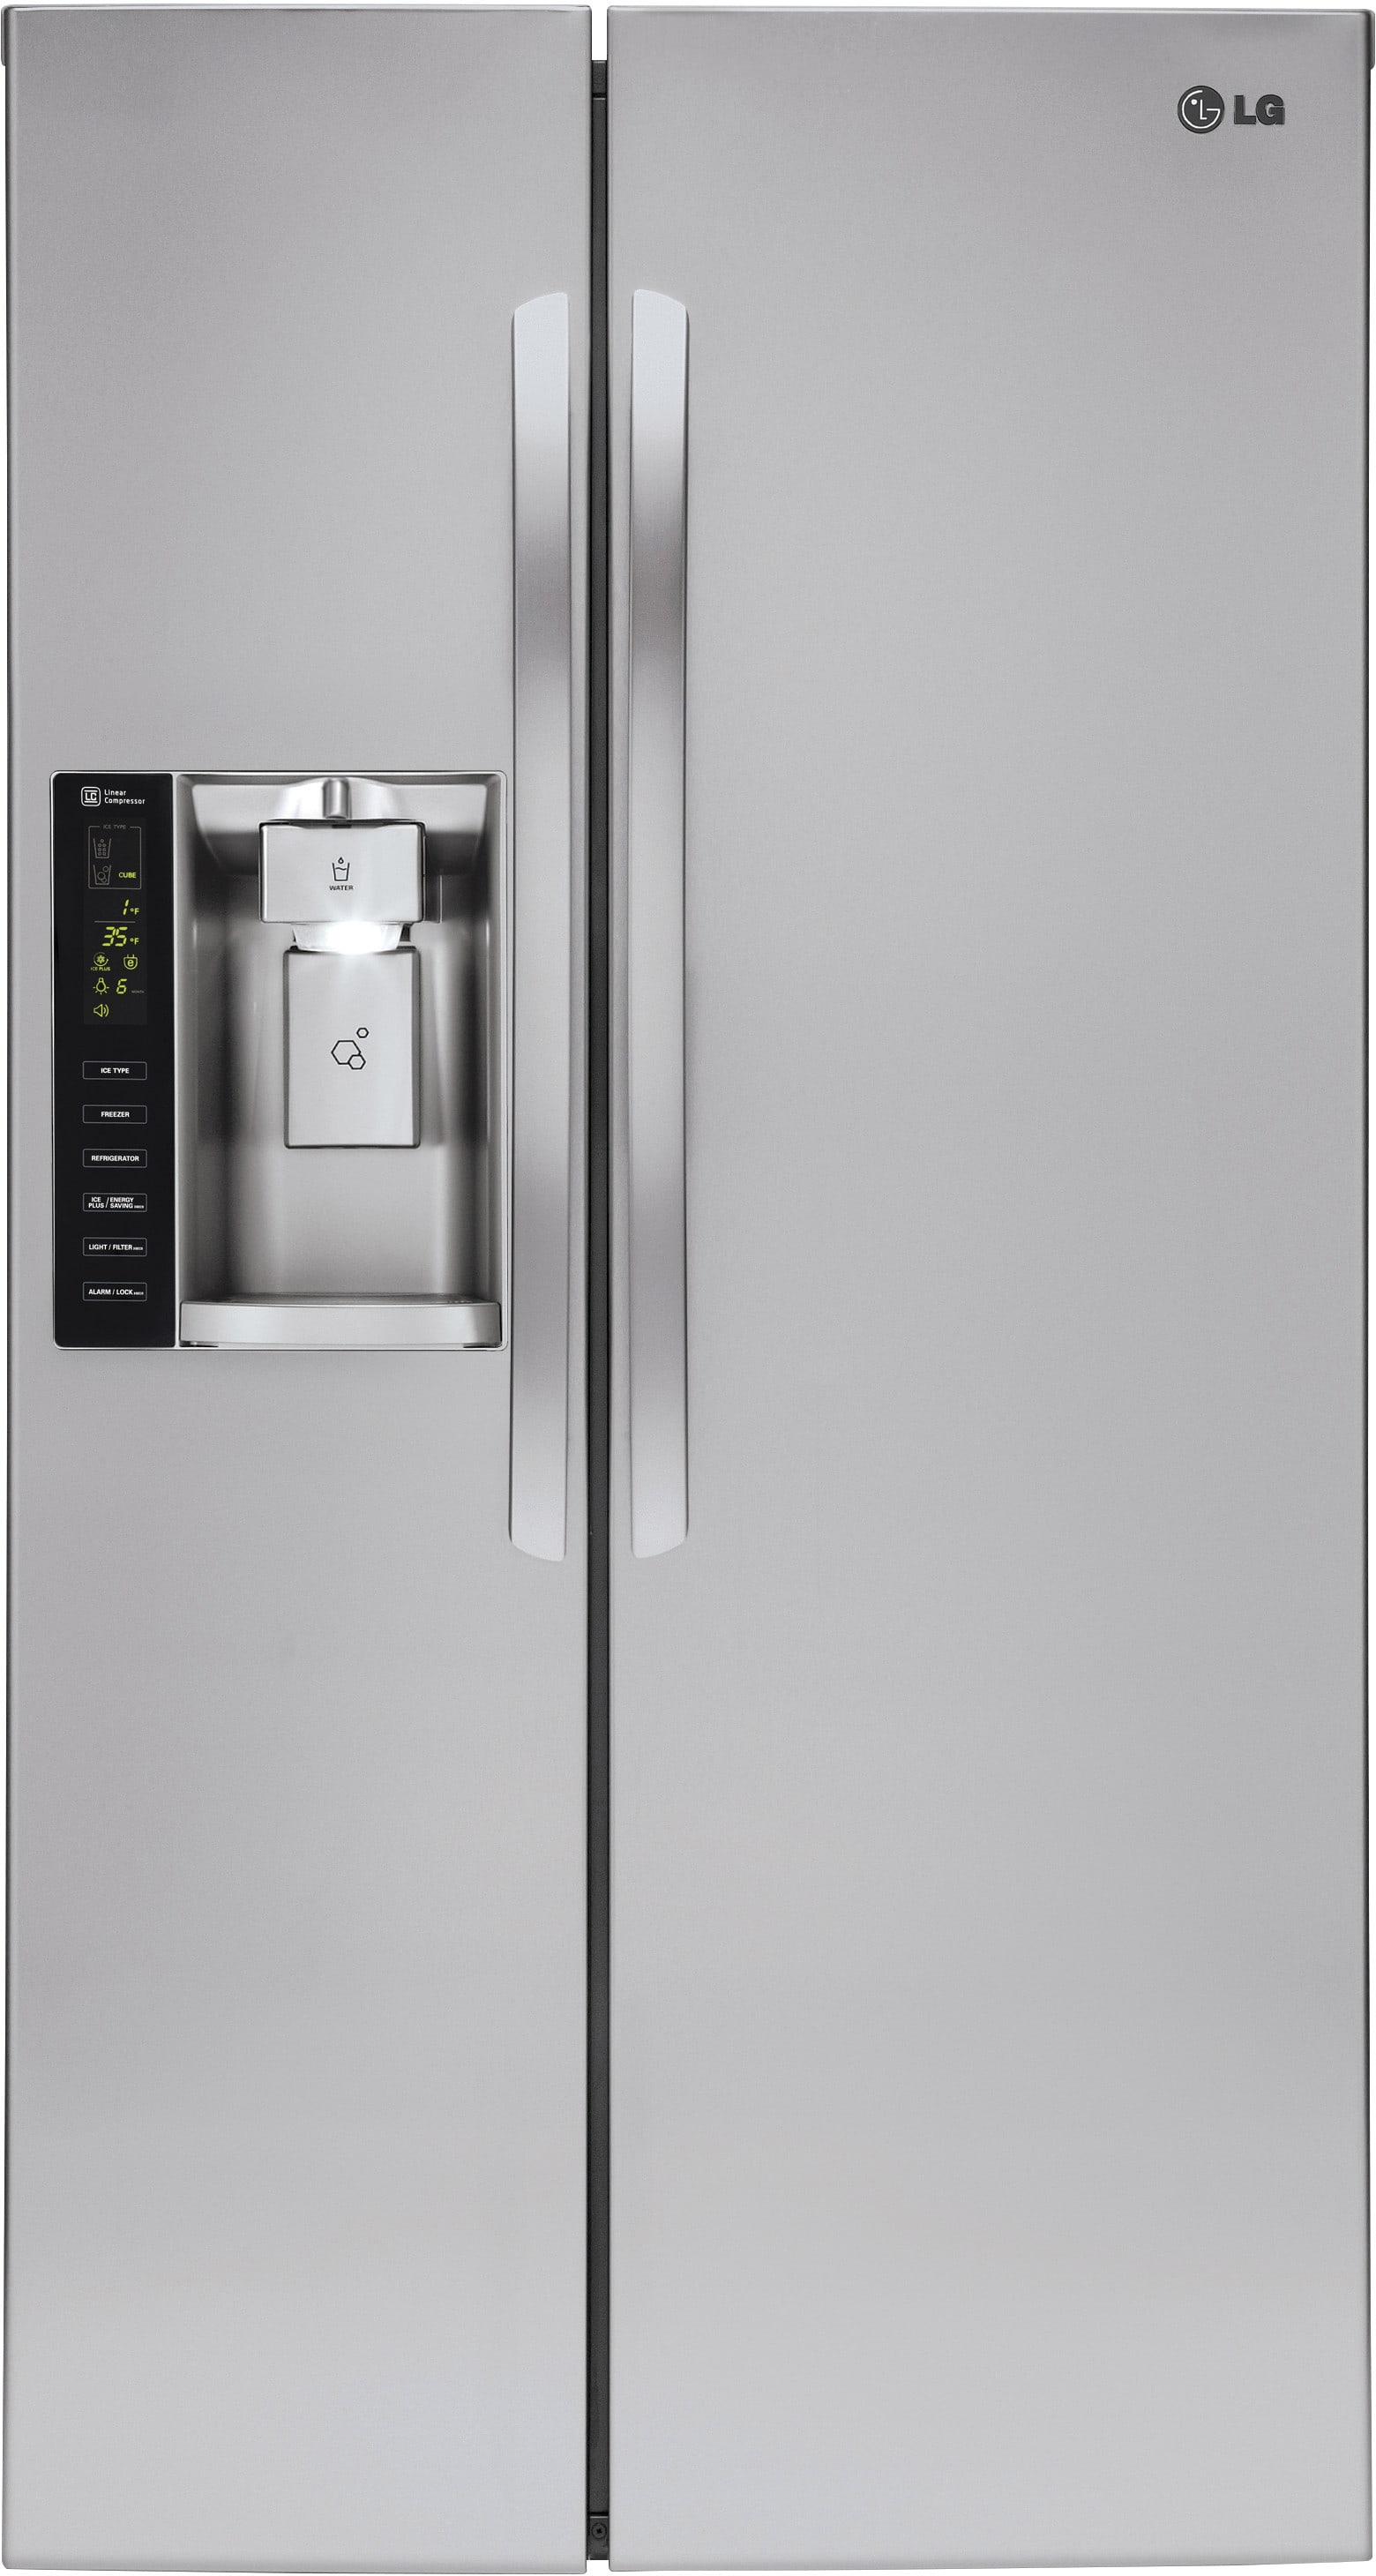 Lg Lsxs26326s 36 Inch Side By Side Refrigerator With Smart